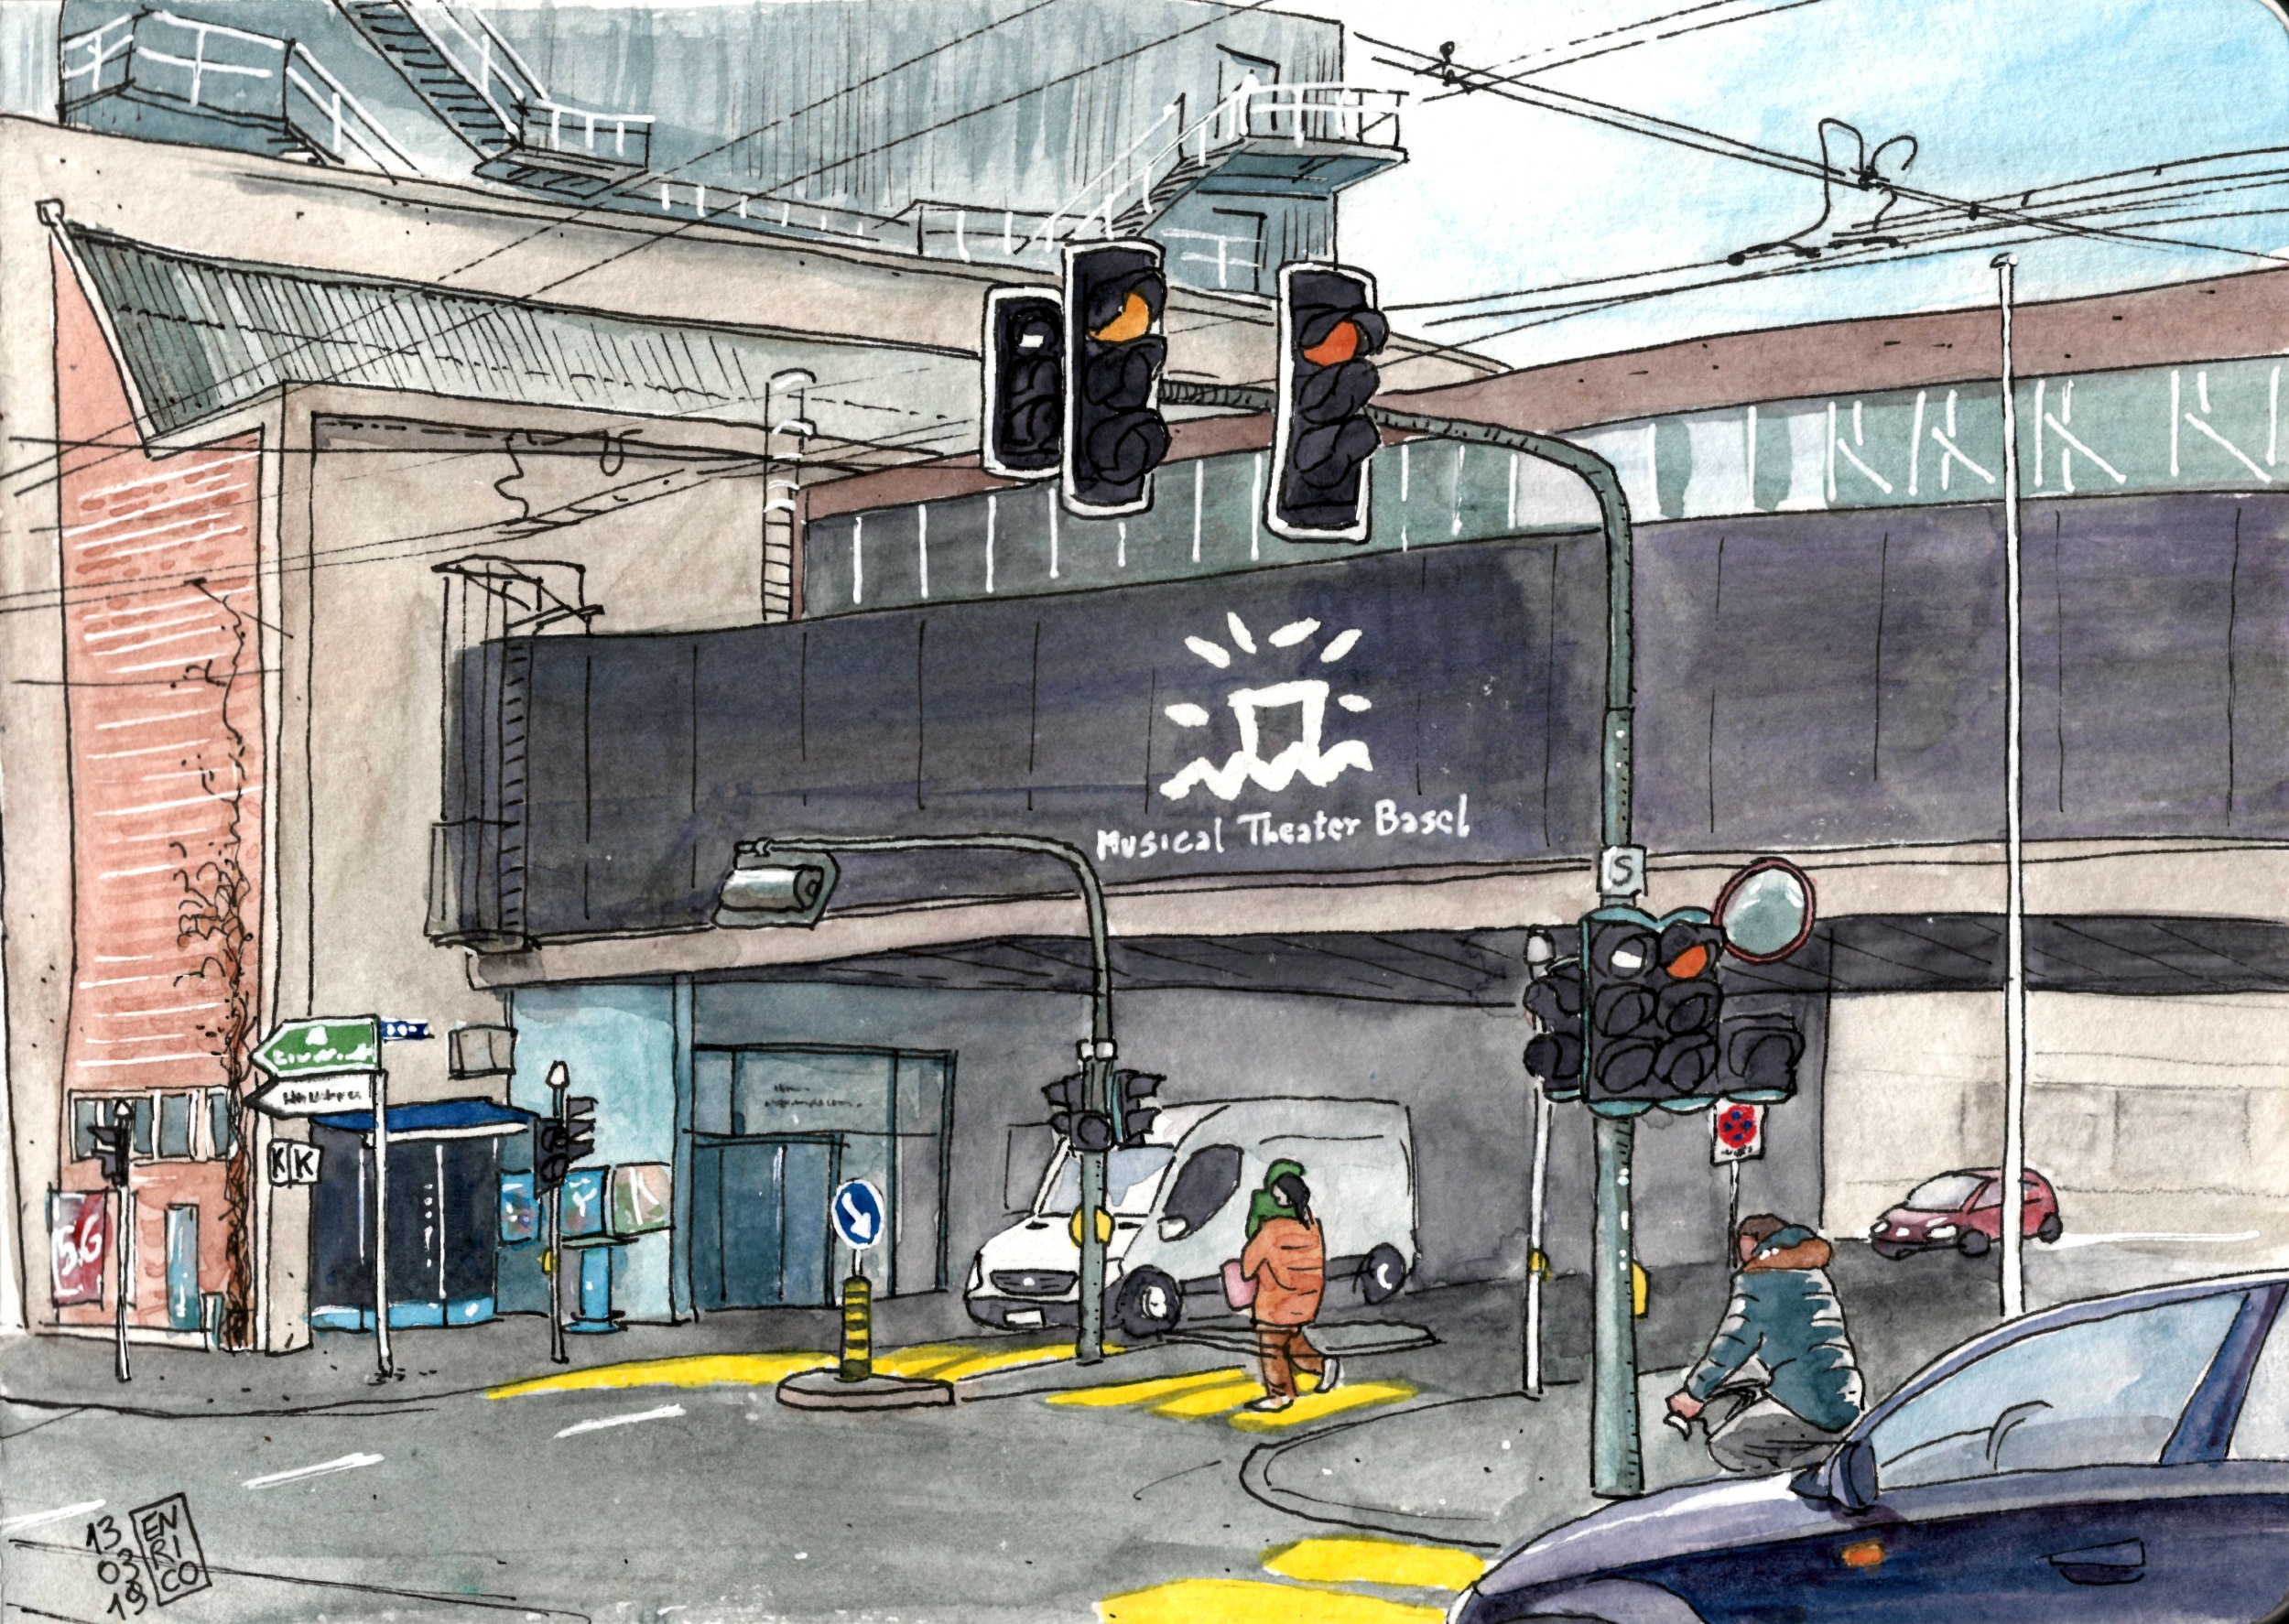 This intersection is very familiar to me, I bike under this tunnel on my way back home. I like the logo of the Musical Theater.